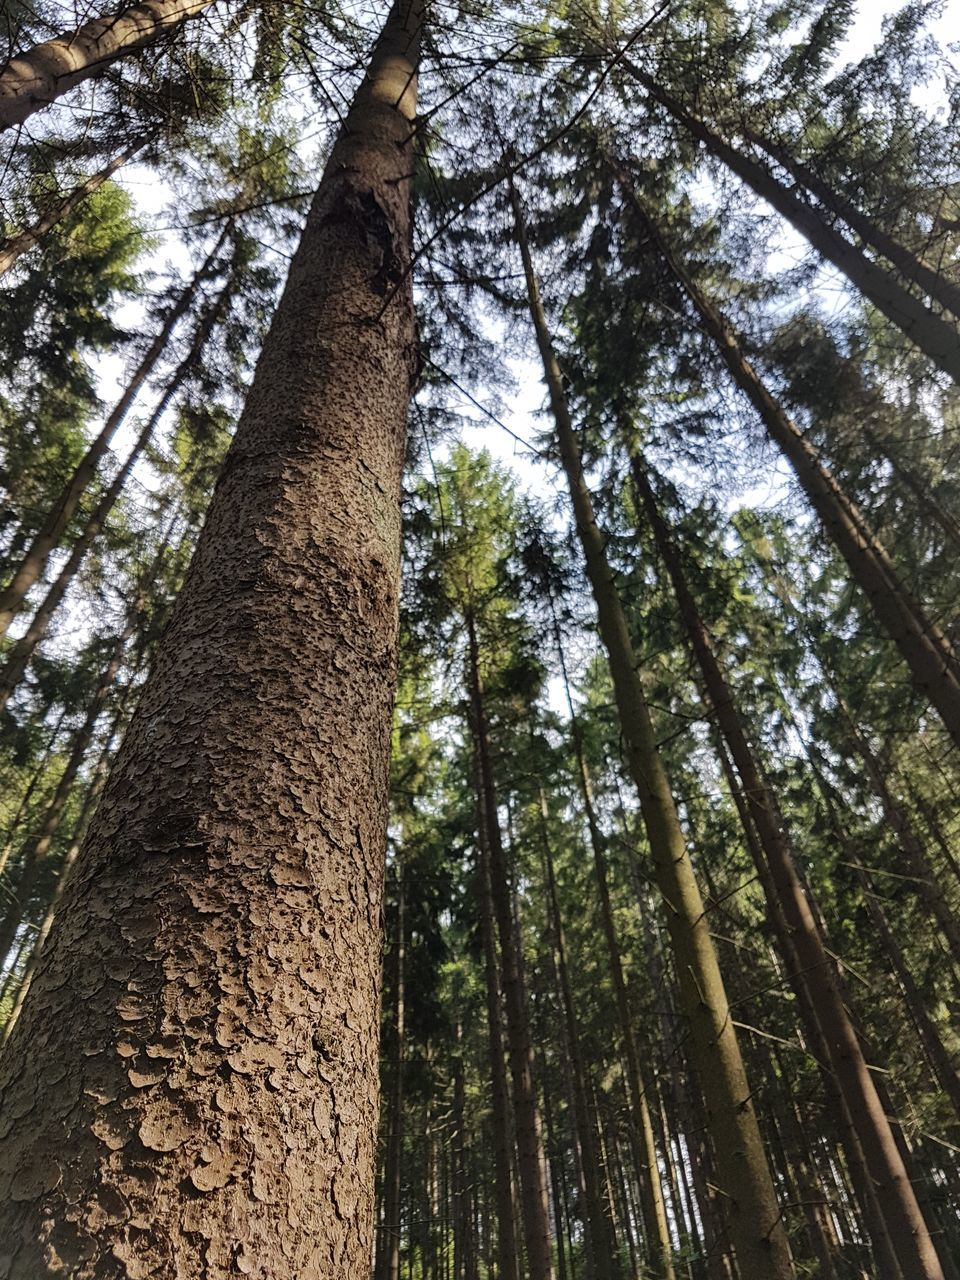 tree trunk, tree, forest, nature, tall - high, low angle view, growth, beauty in nature, day, outdoors, tranquility, no people, bamboo grove, tranquil scene, woodland, bamboo - plant, scenics, branch, tall, tree area, sky